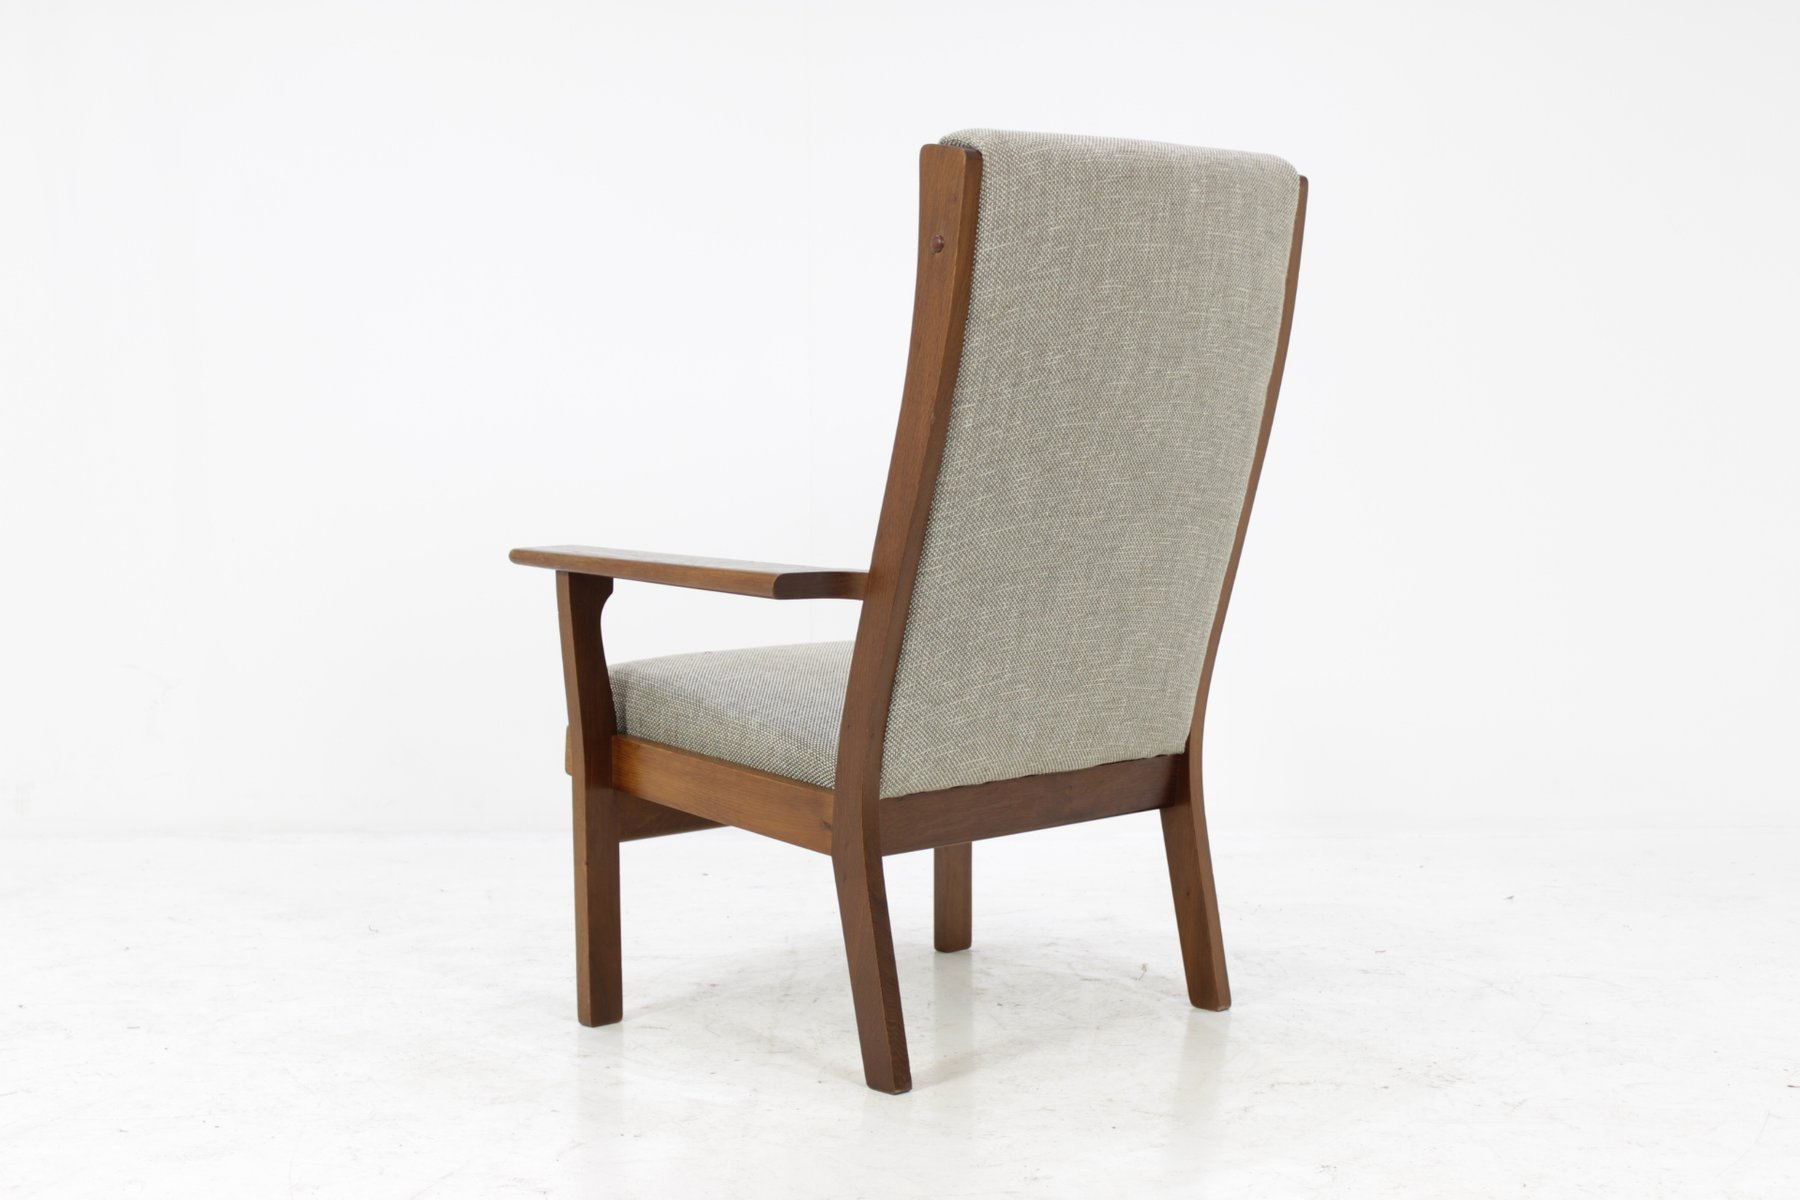 Vintage Ge181a High Back Easy Chair By Hans J Wegner For Getama